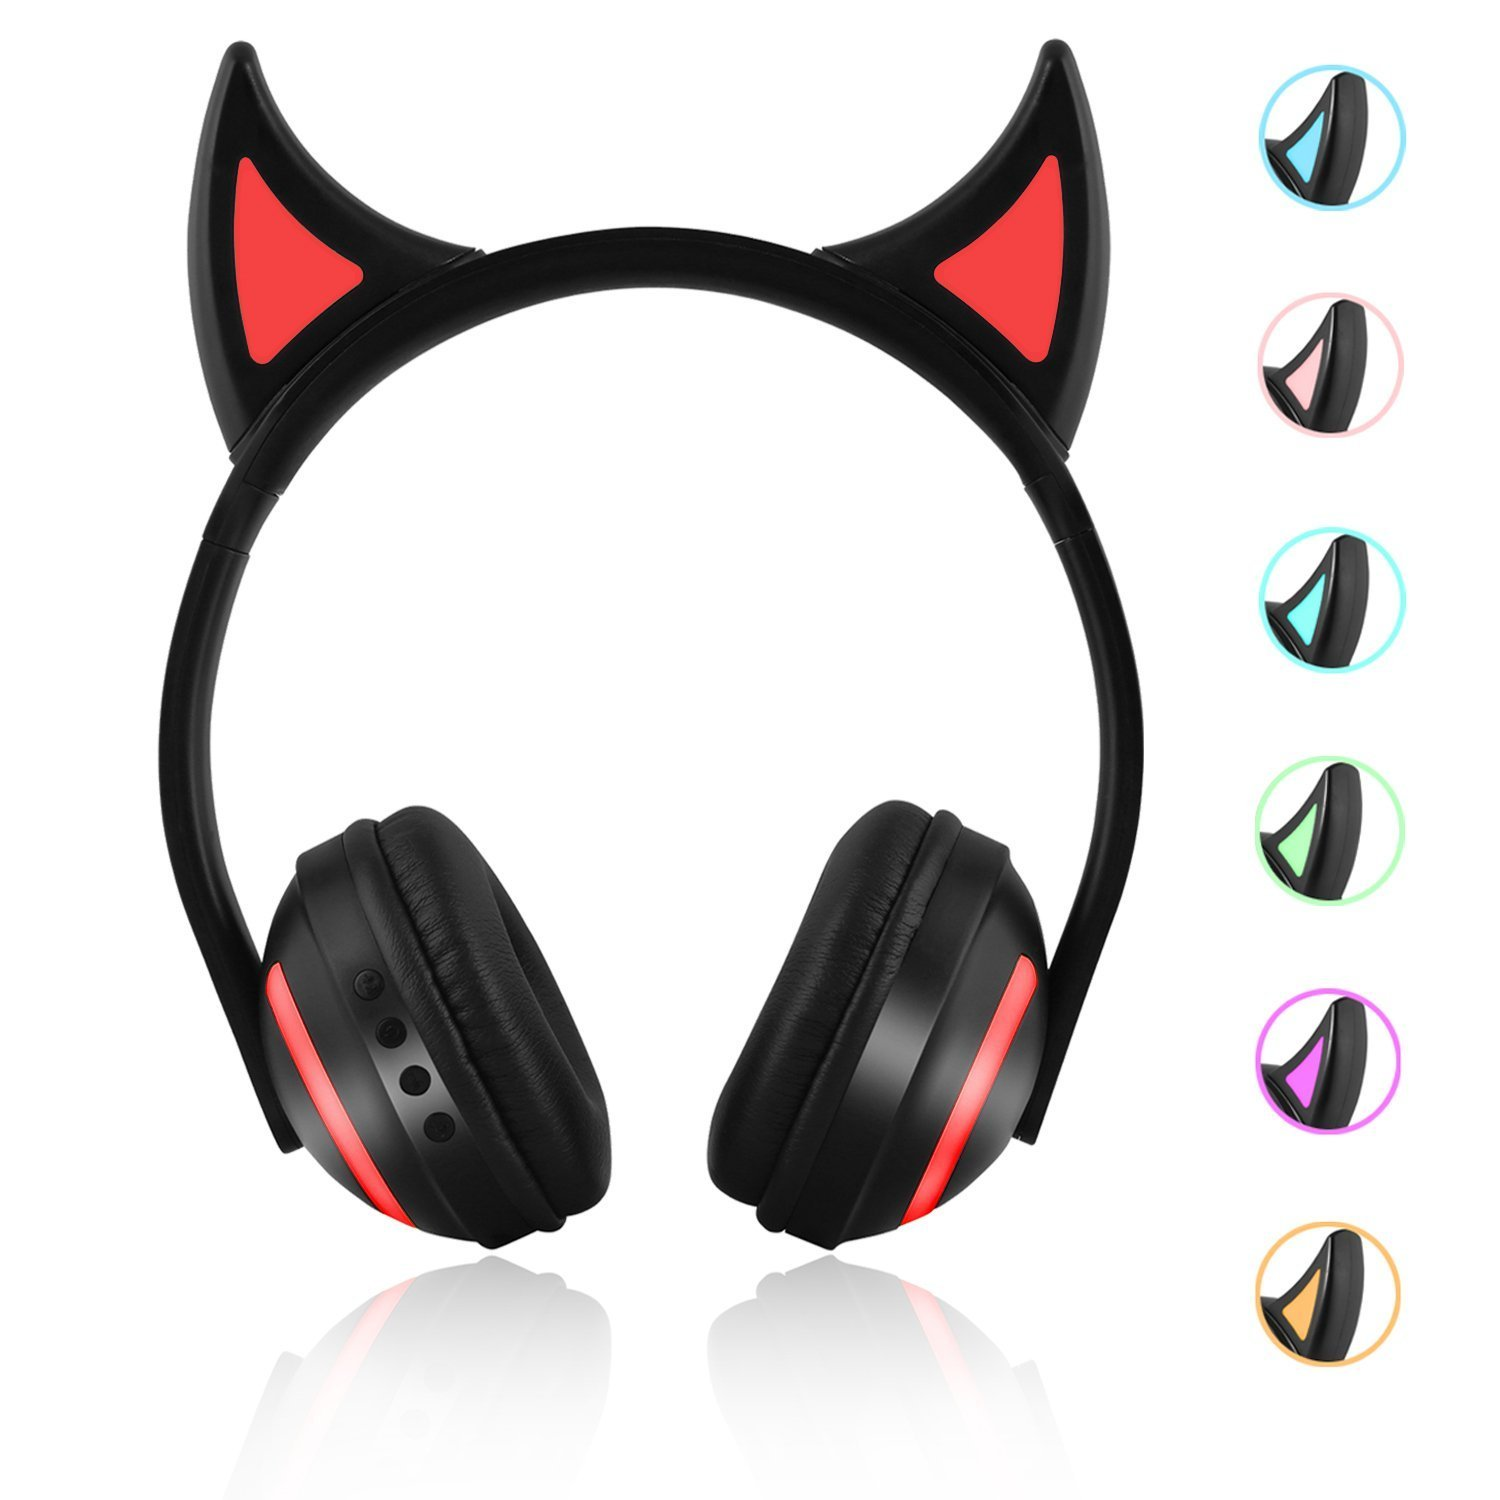 Over-Ear Headphones - 77 - Blowout Sale! Save up to 68